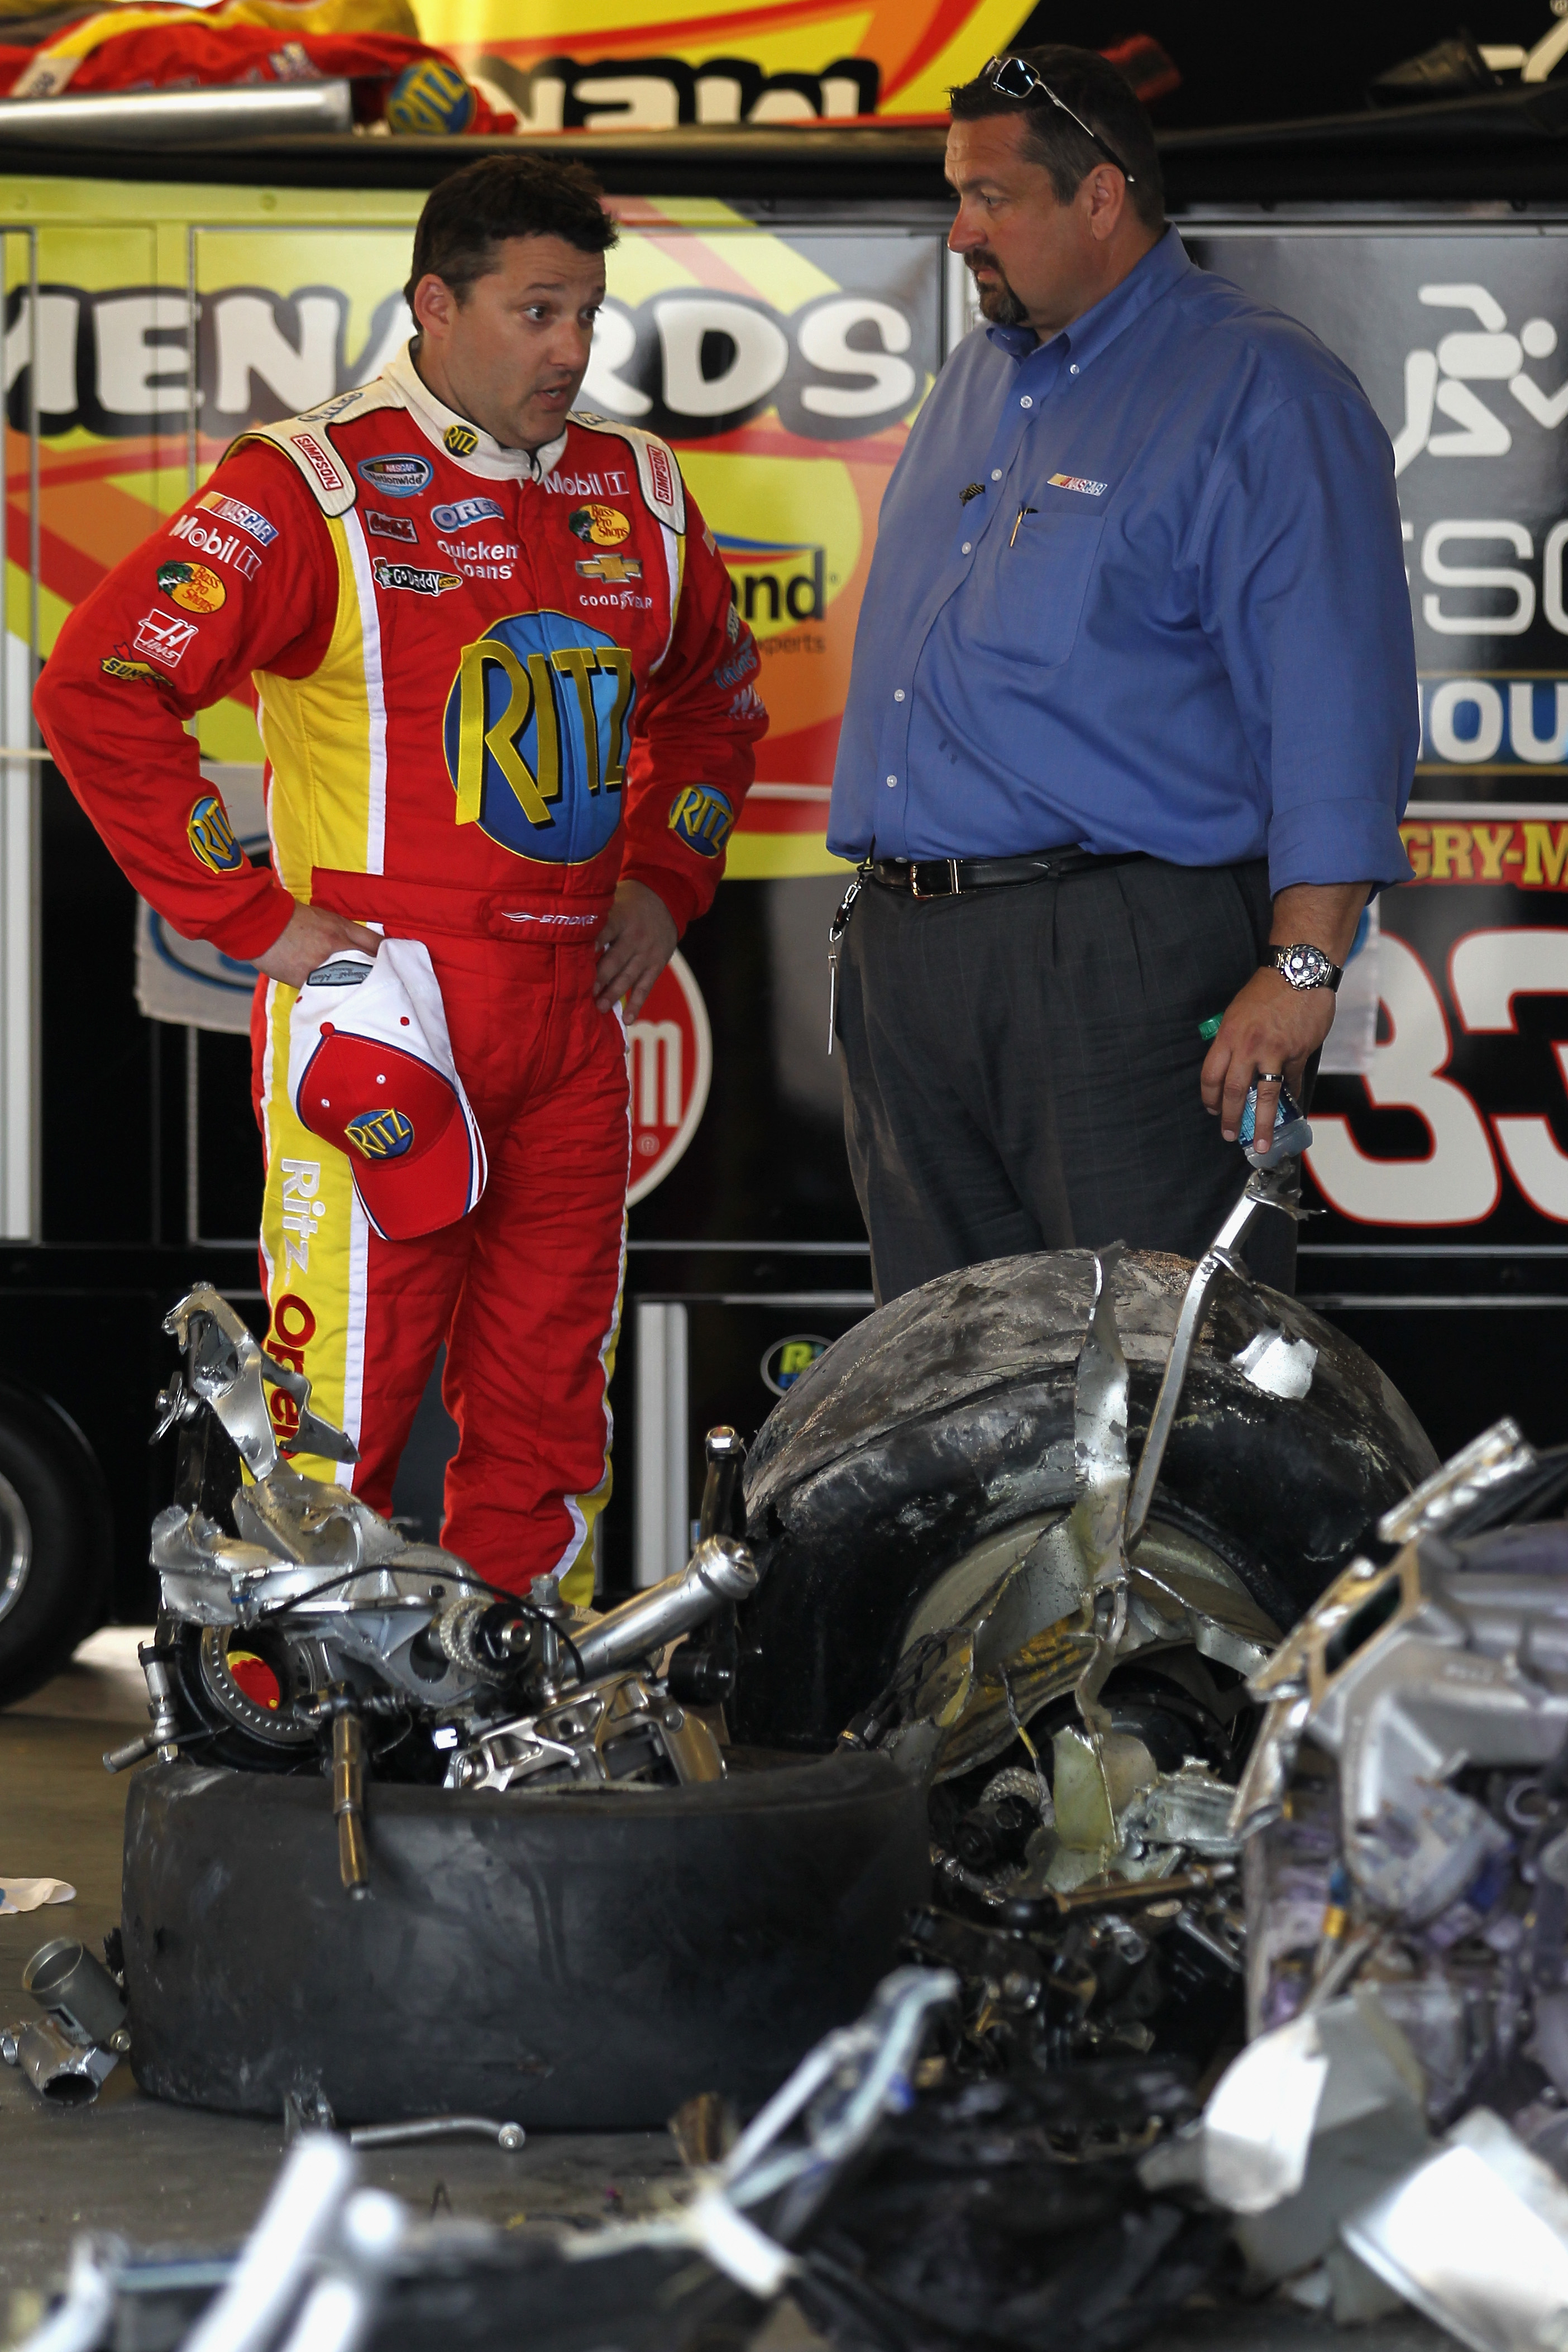 Tony Stewart, left, looks at the debris of the car driven by Kyle Larson. (Getty Images)